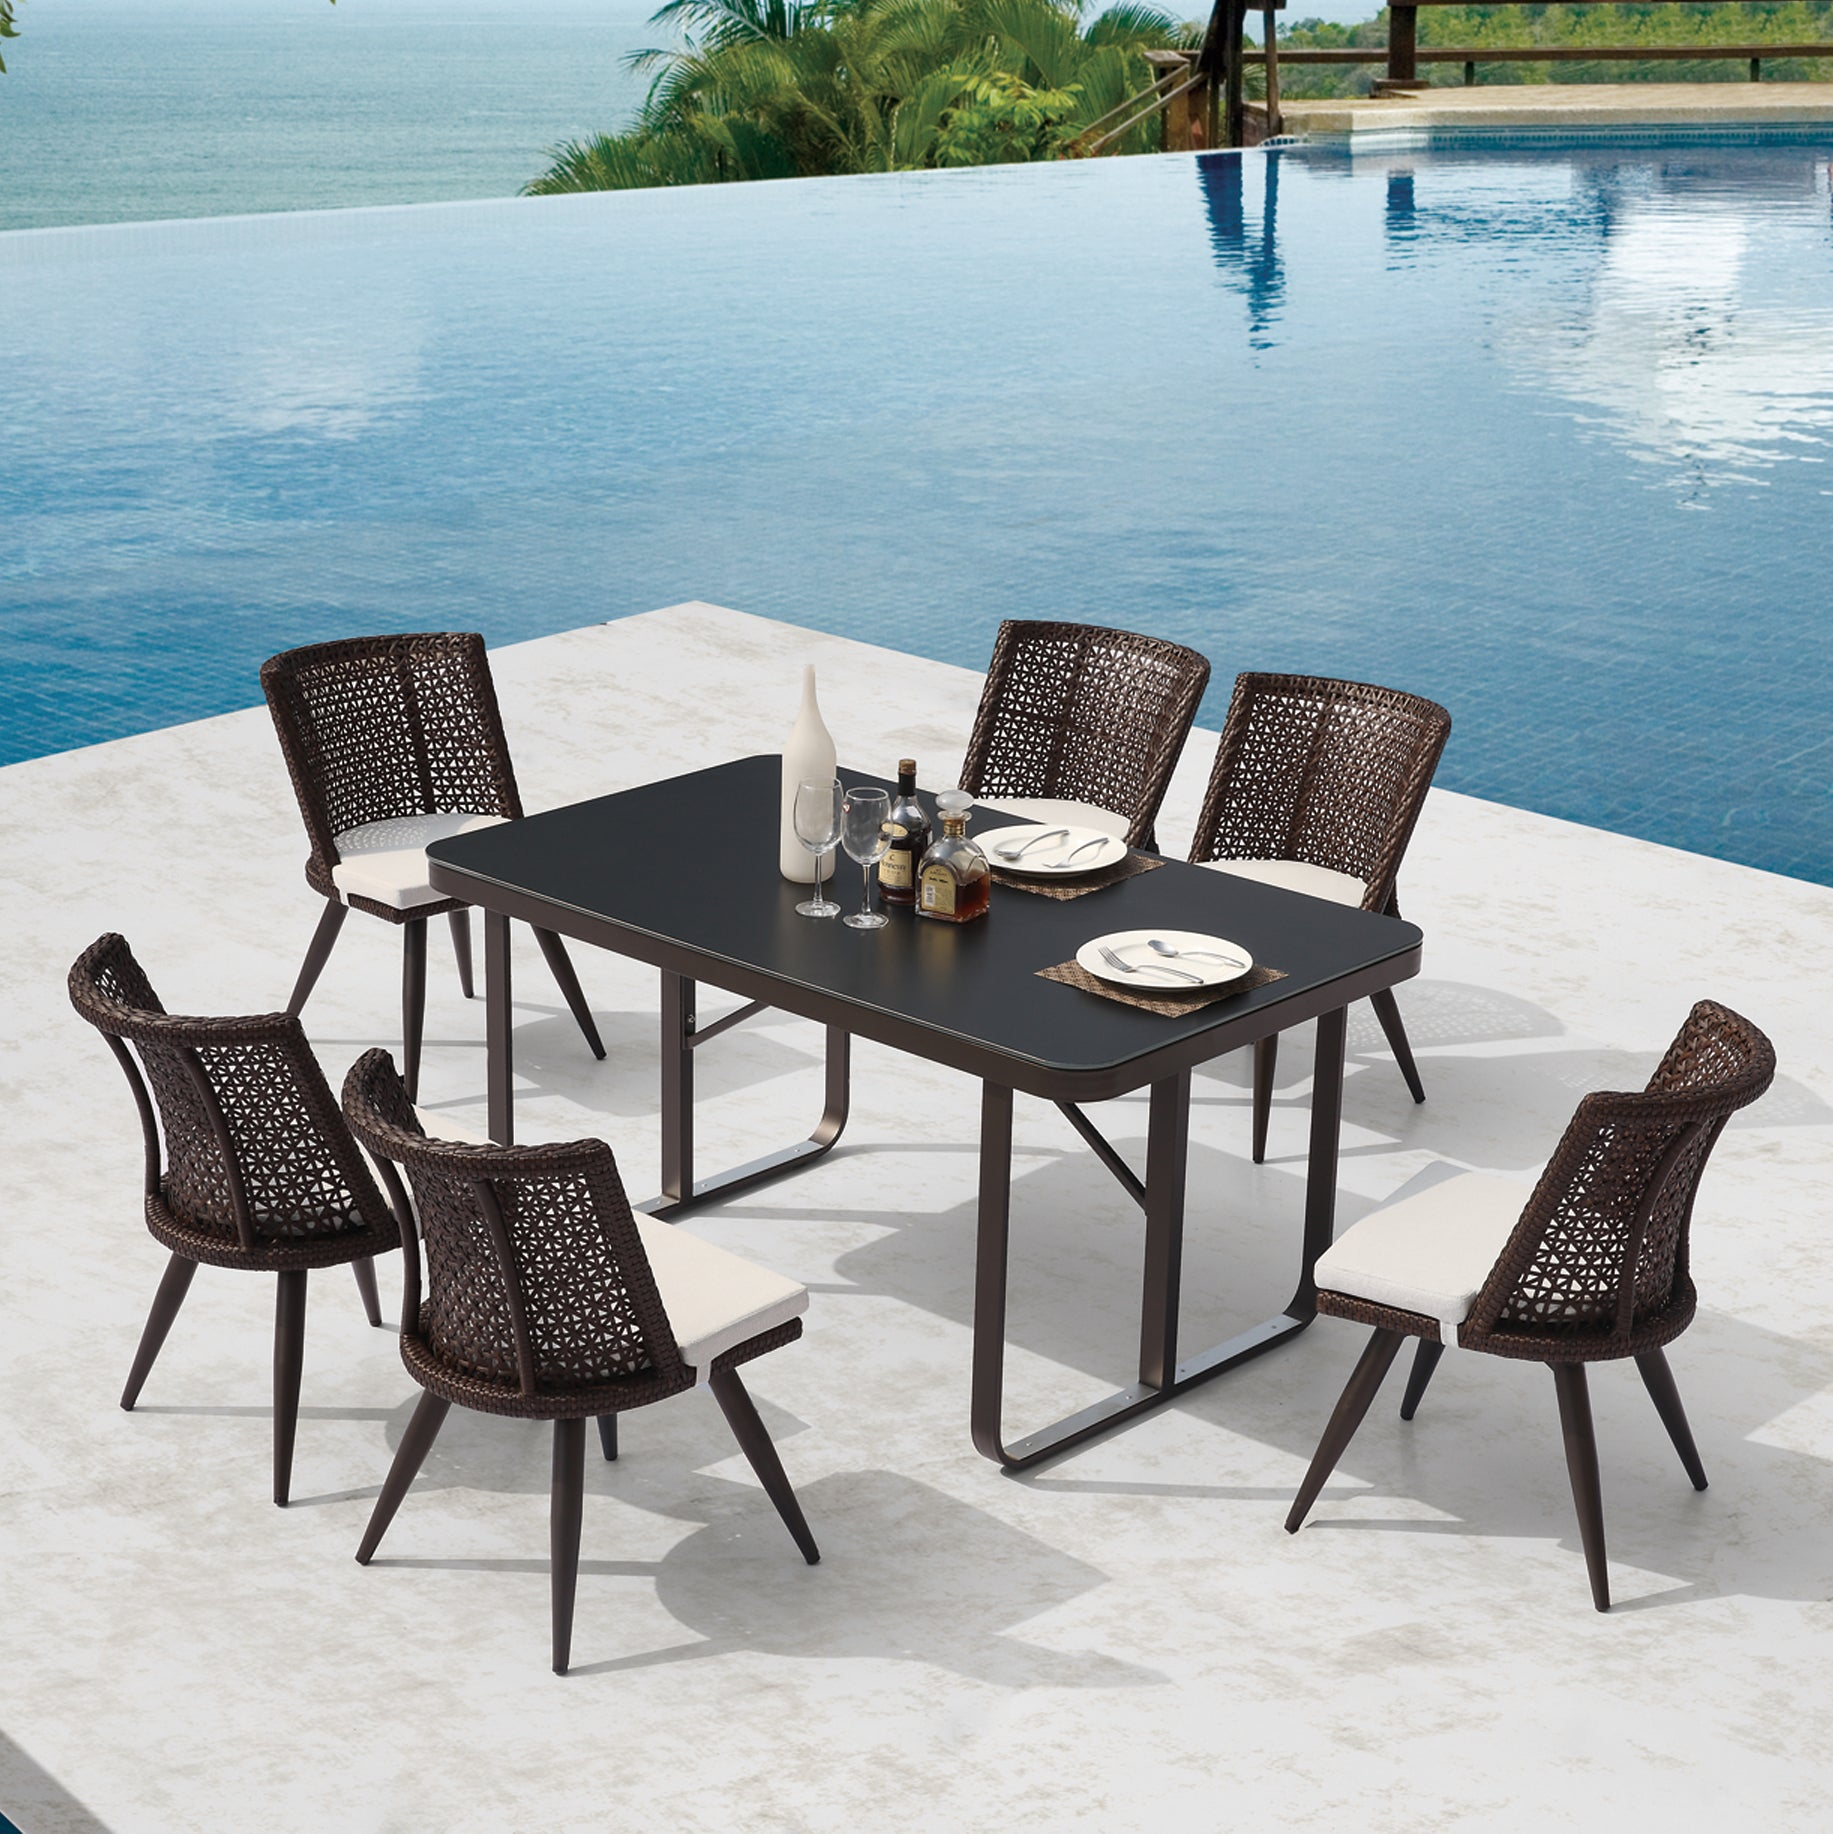 Evian dining set sample sale 30 off